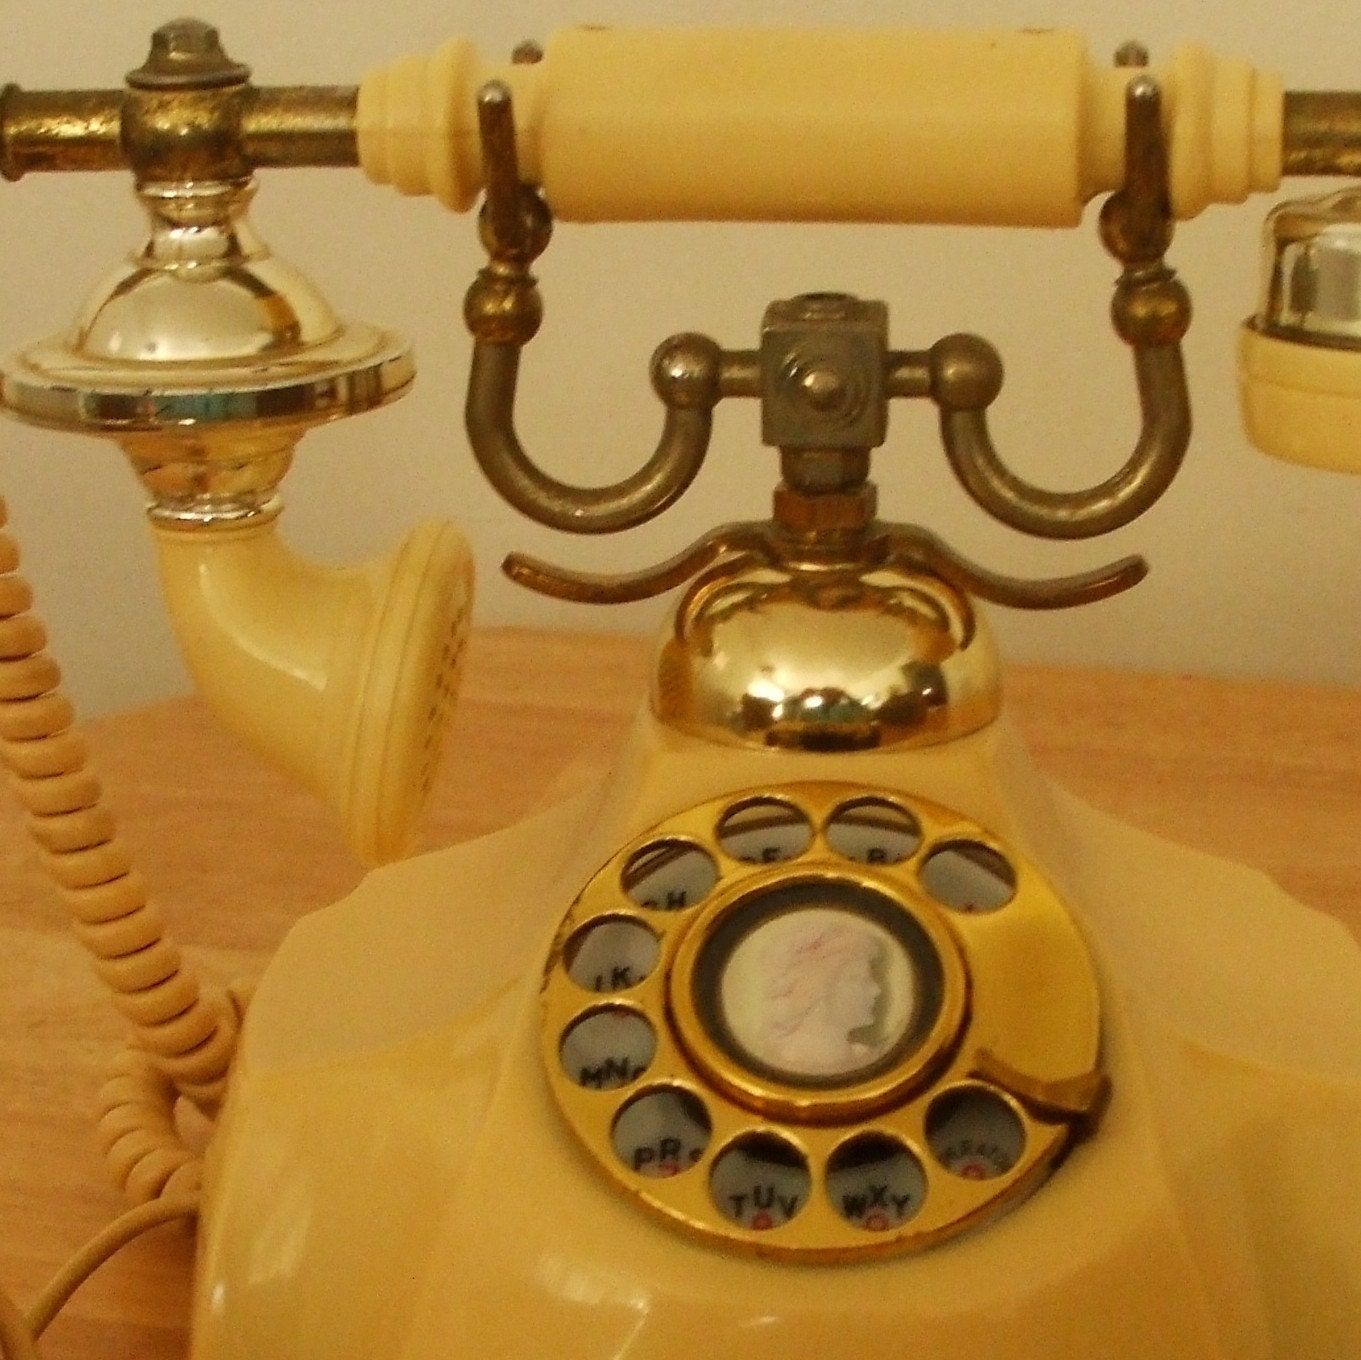 Vintage Rotary Phone Very fancy French Provencal by